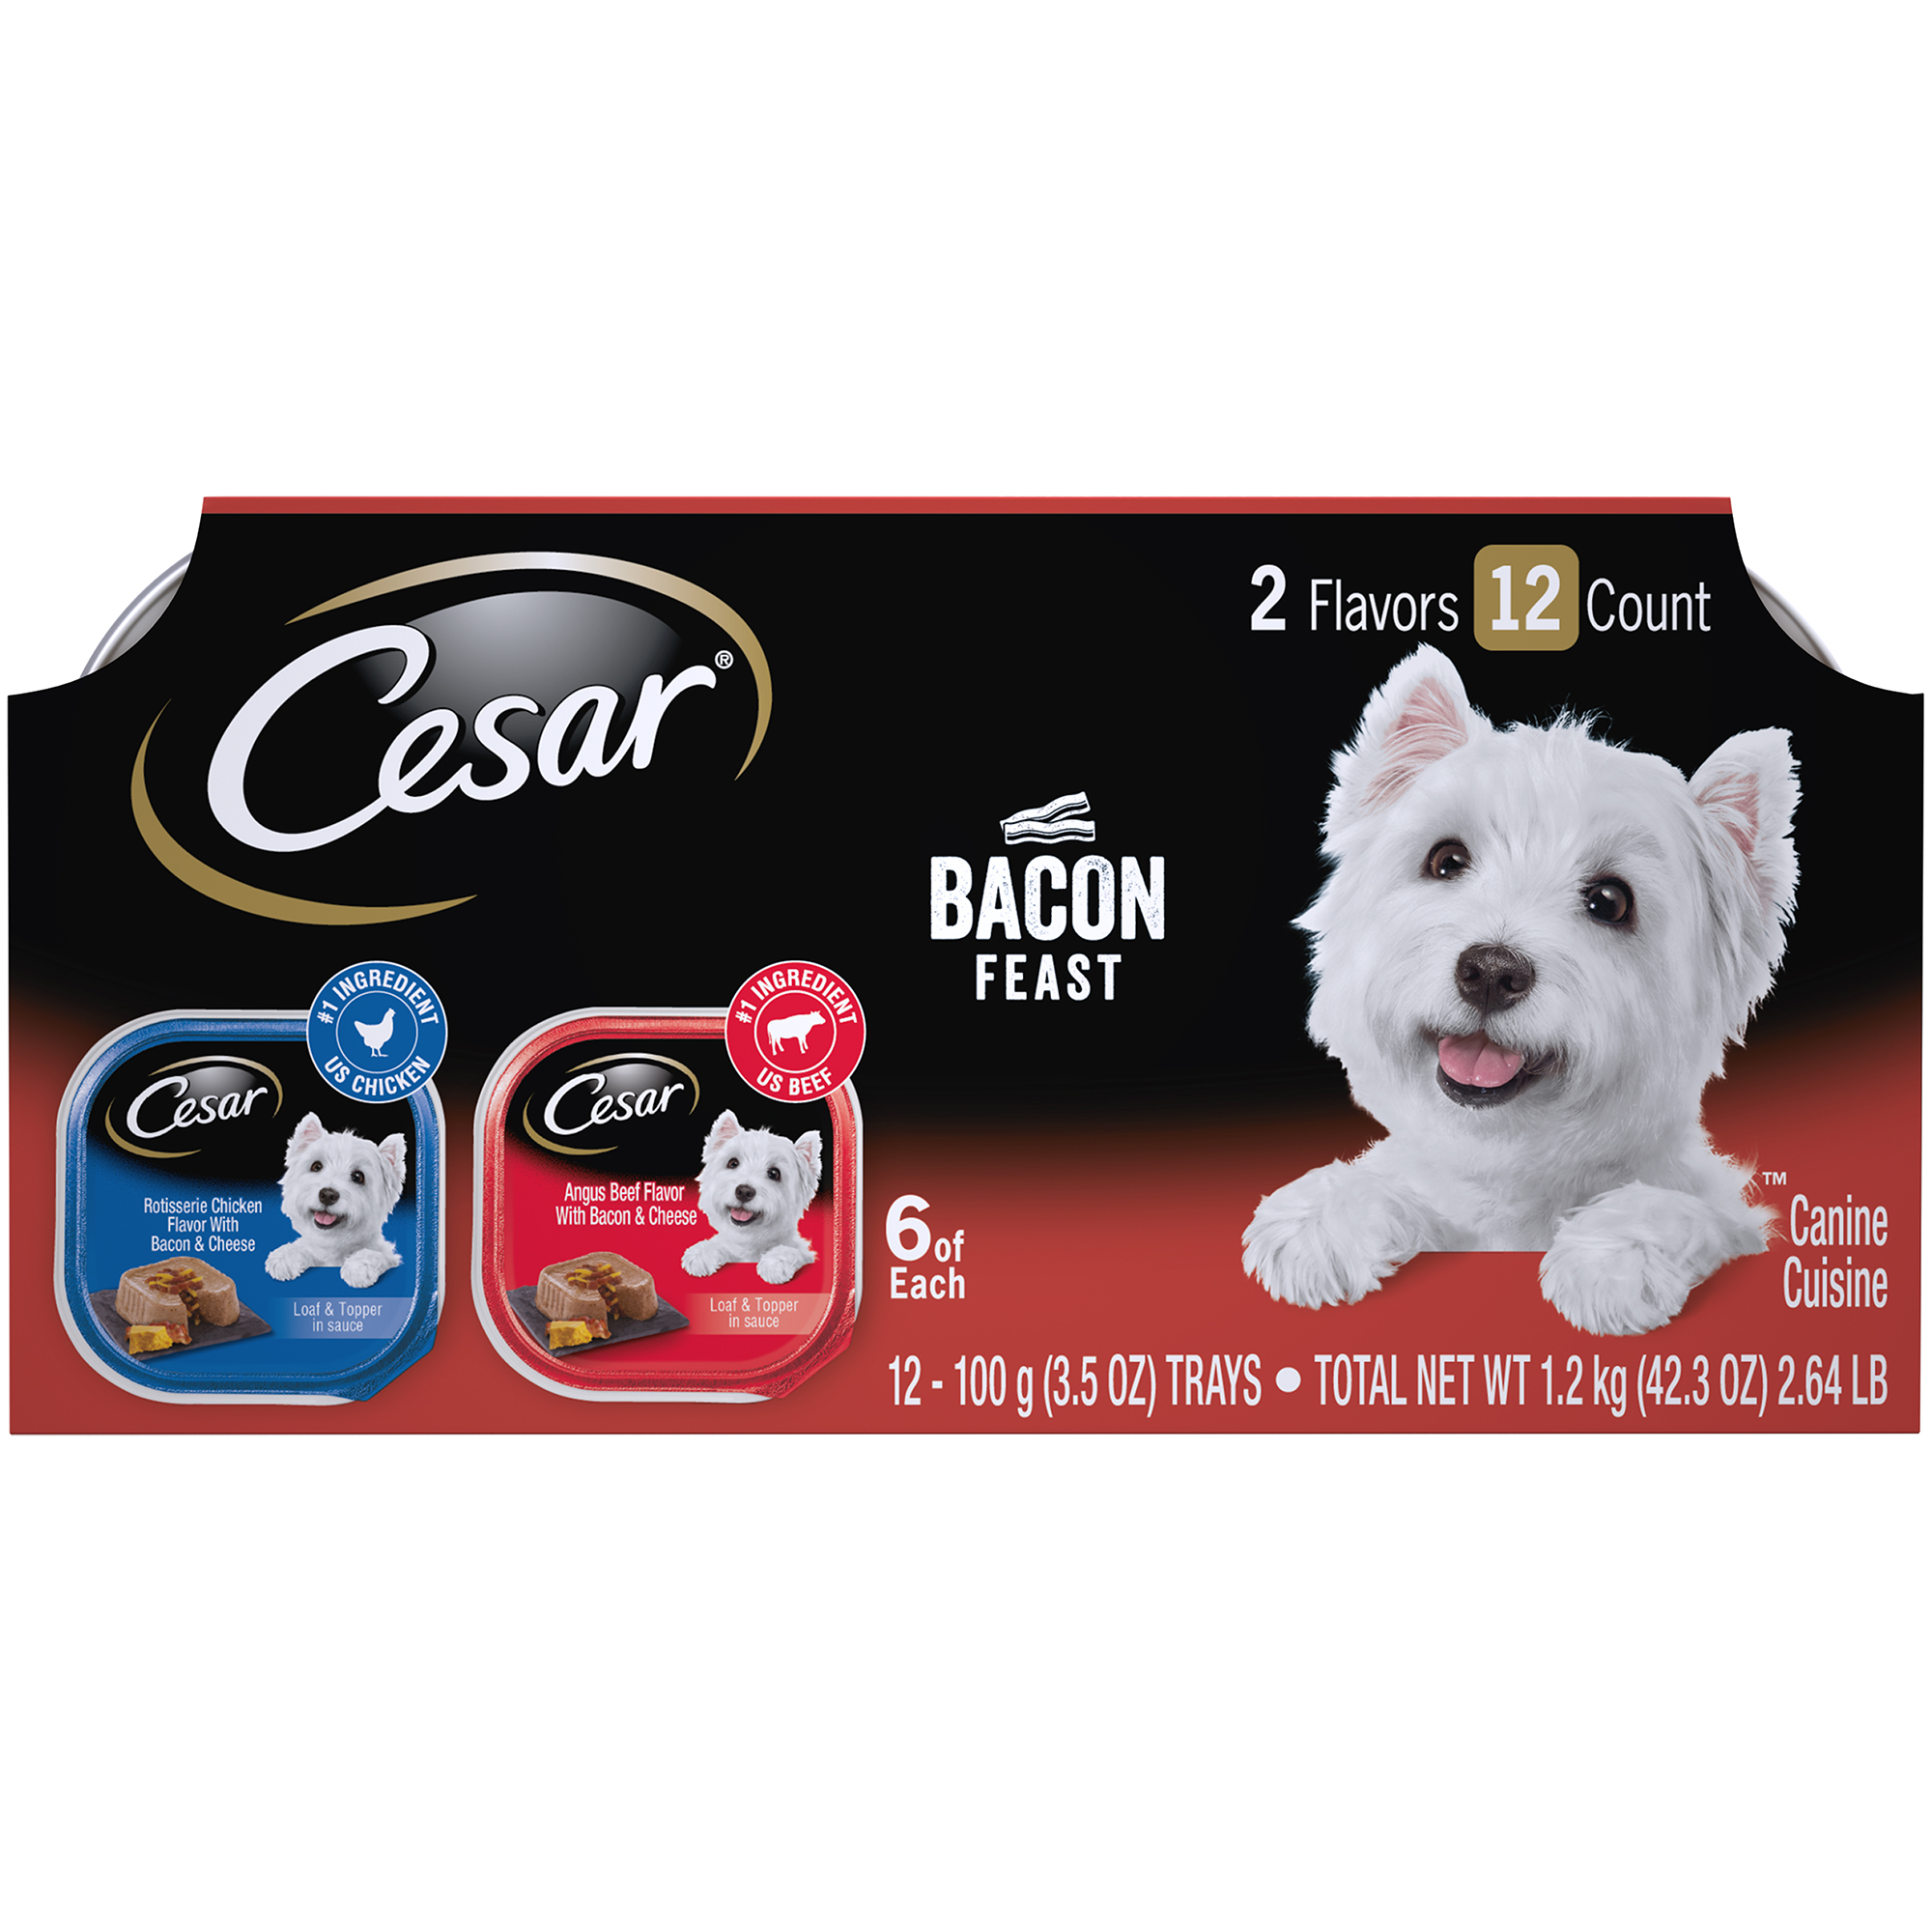 Cesar Wet Dog Food Loaf & Topper in Sauce Bacon Feast Variety Pack, (12) 3.5 oz. Trays